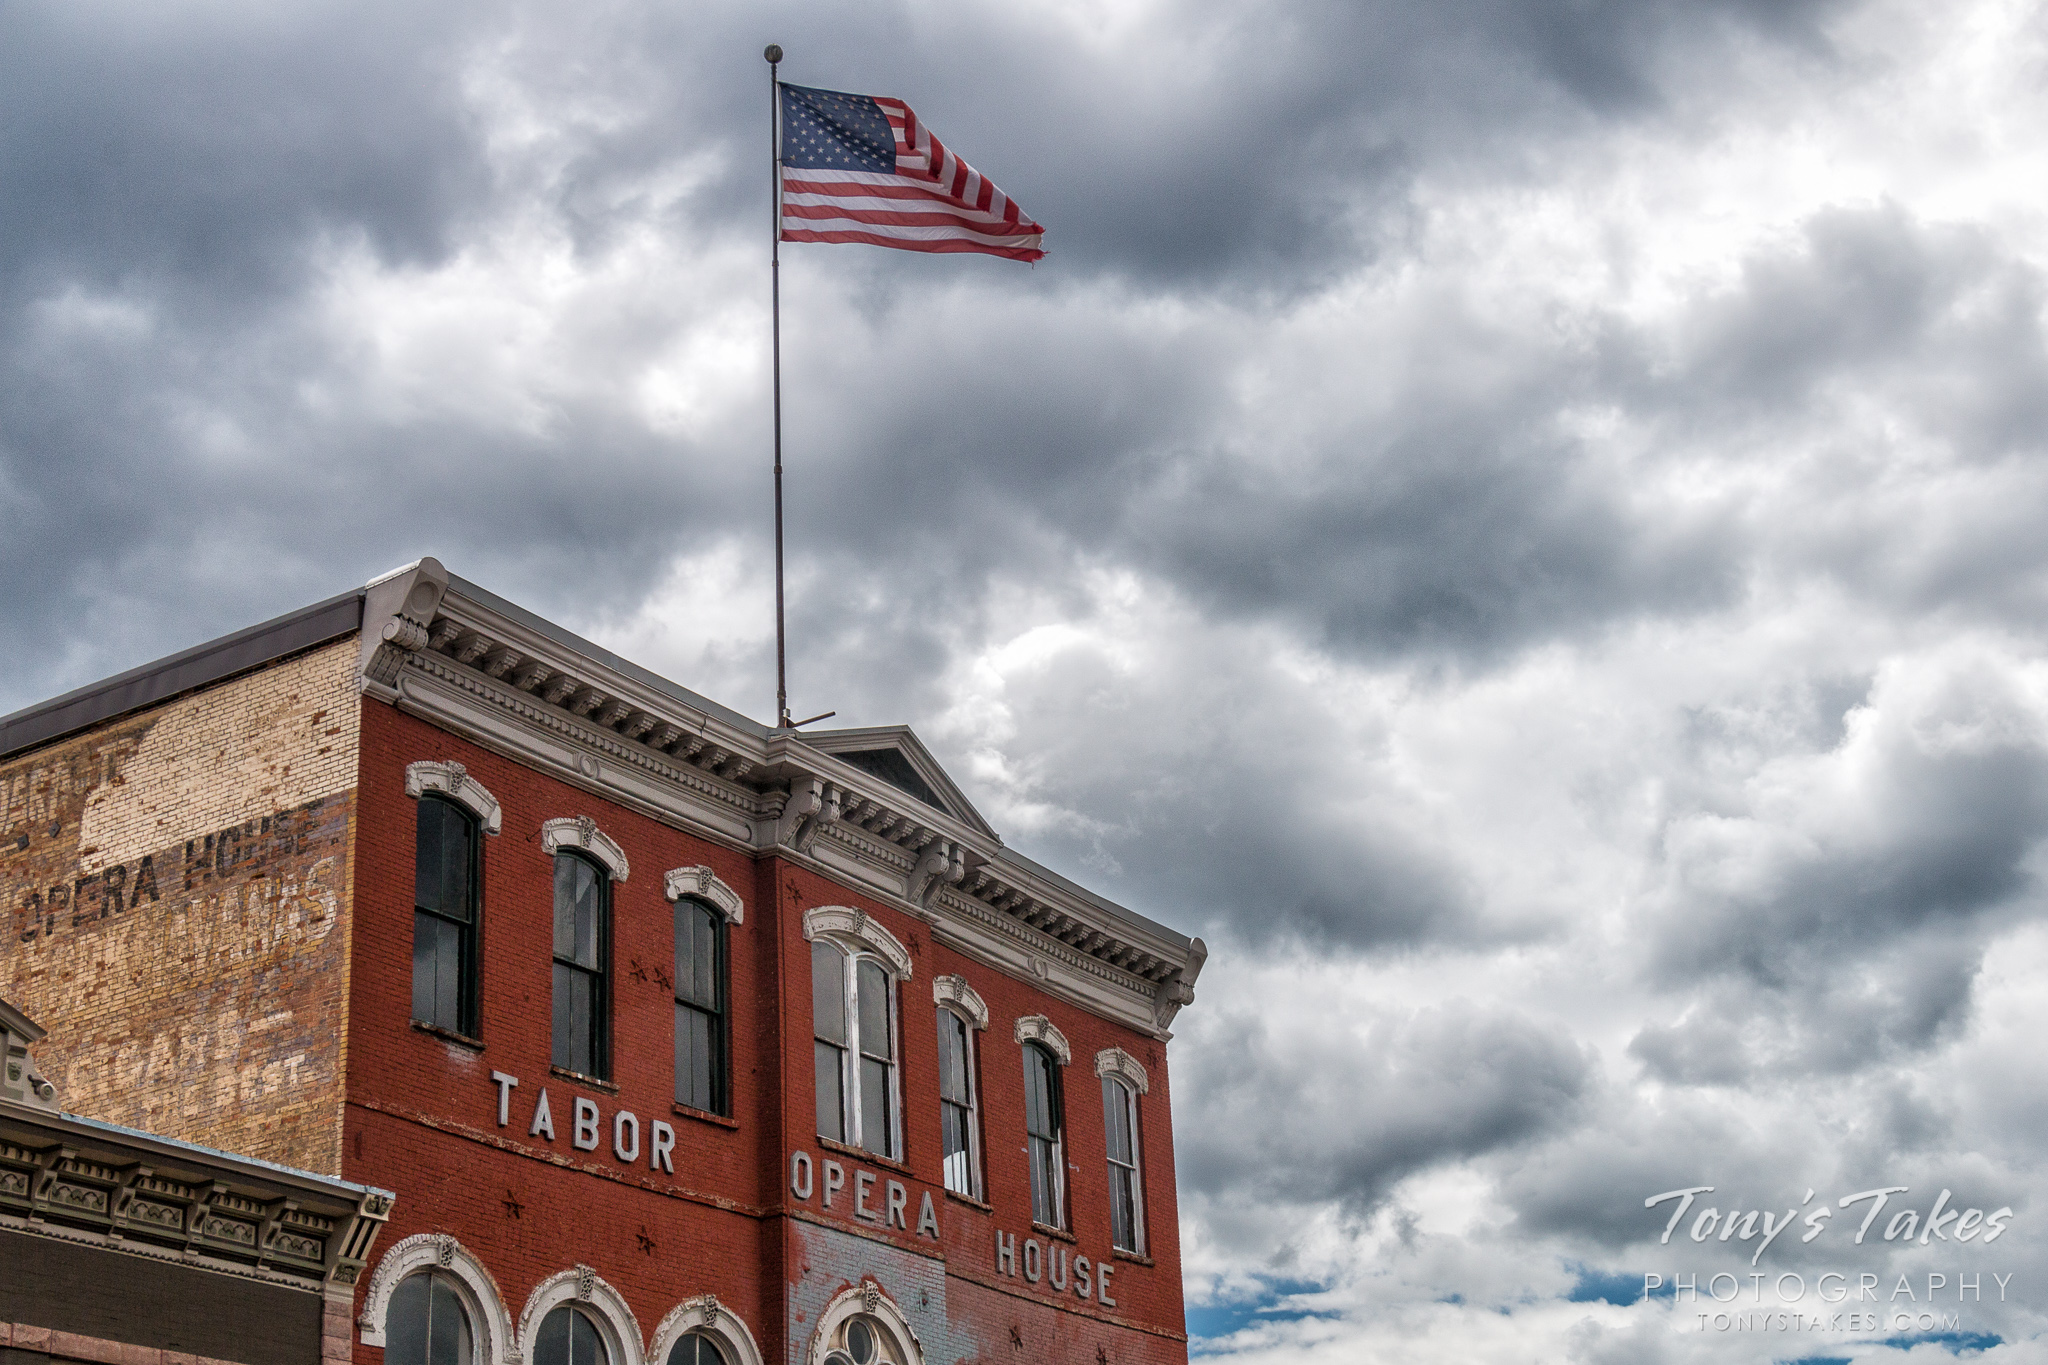 The historical Tabor Opera House in Leadville, Colorado. (© Tony's Takes)